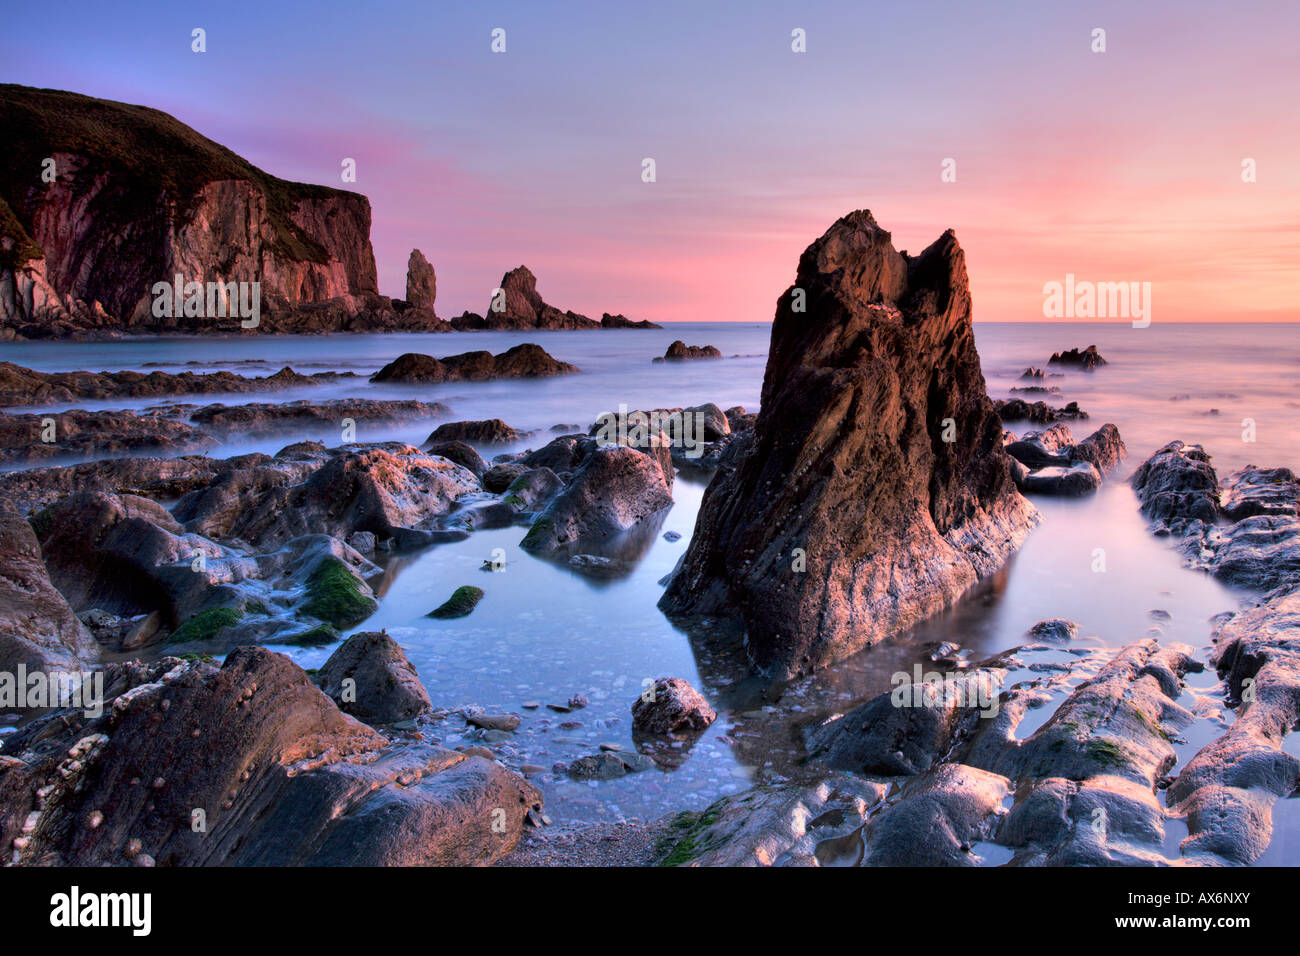 Jagged rocks and cliffs around Bantham in South Devon - Stock Image